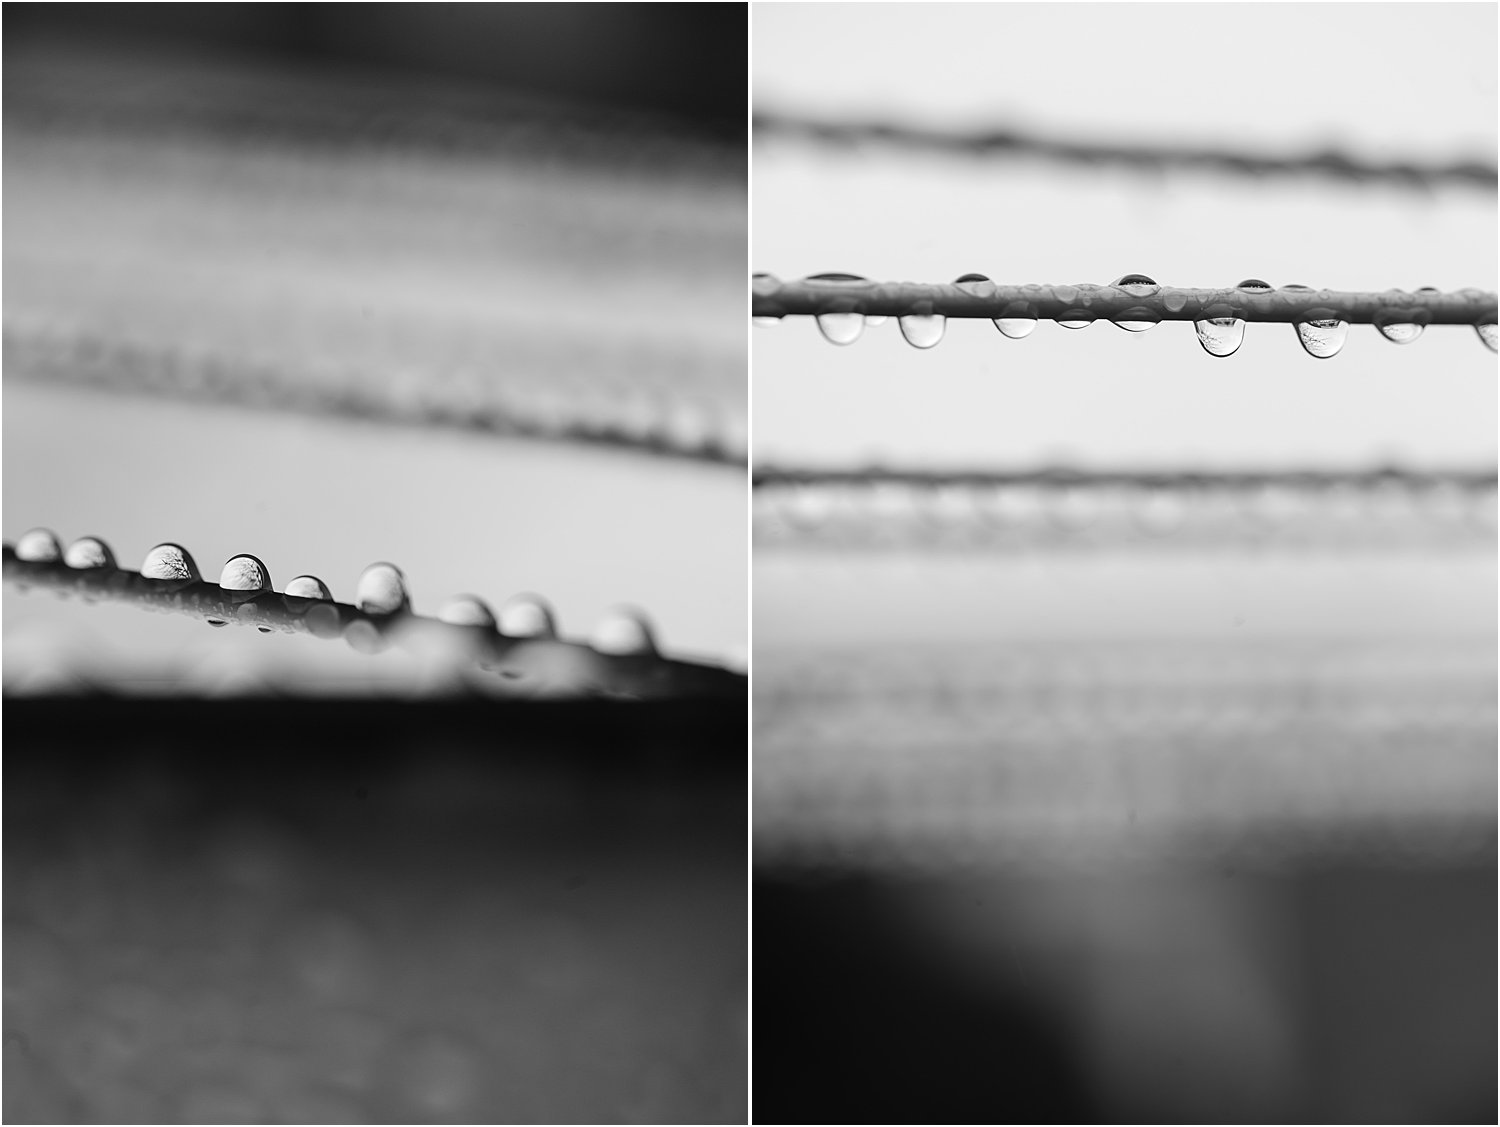 DPS How to use pattern and repetition in photography by Lily Sawyer – dewdrops on lines in balck and white